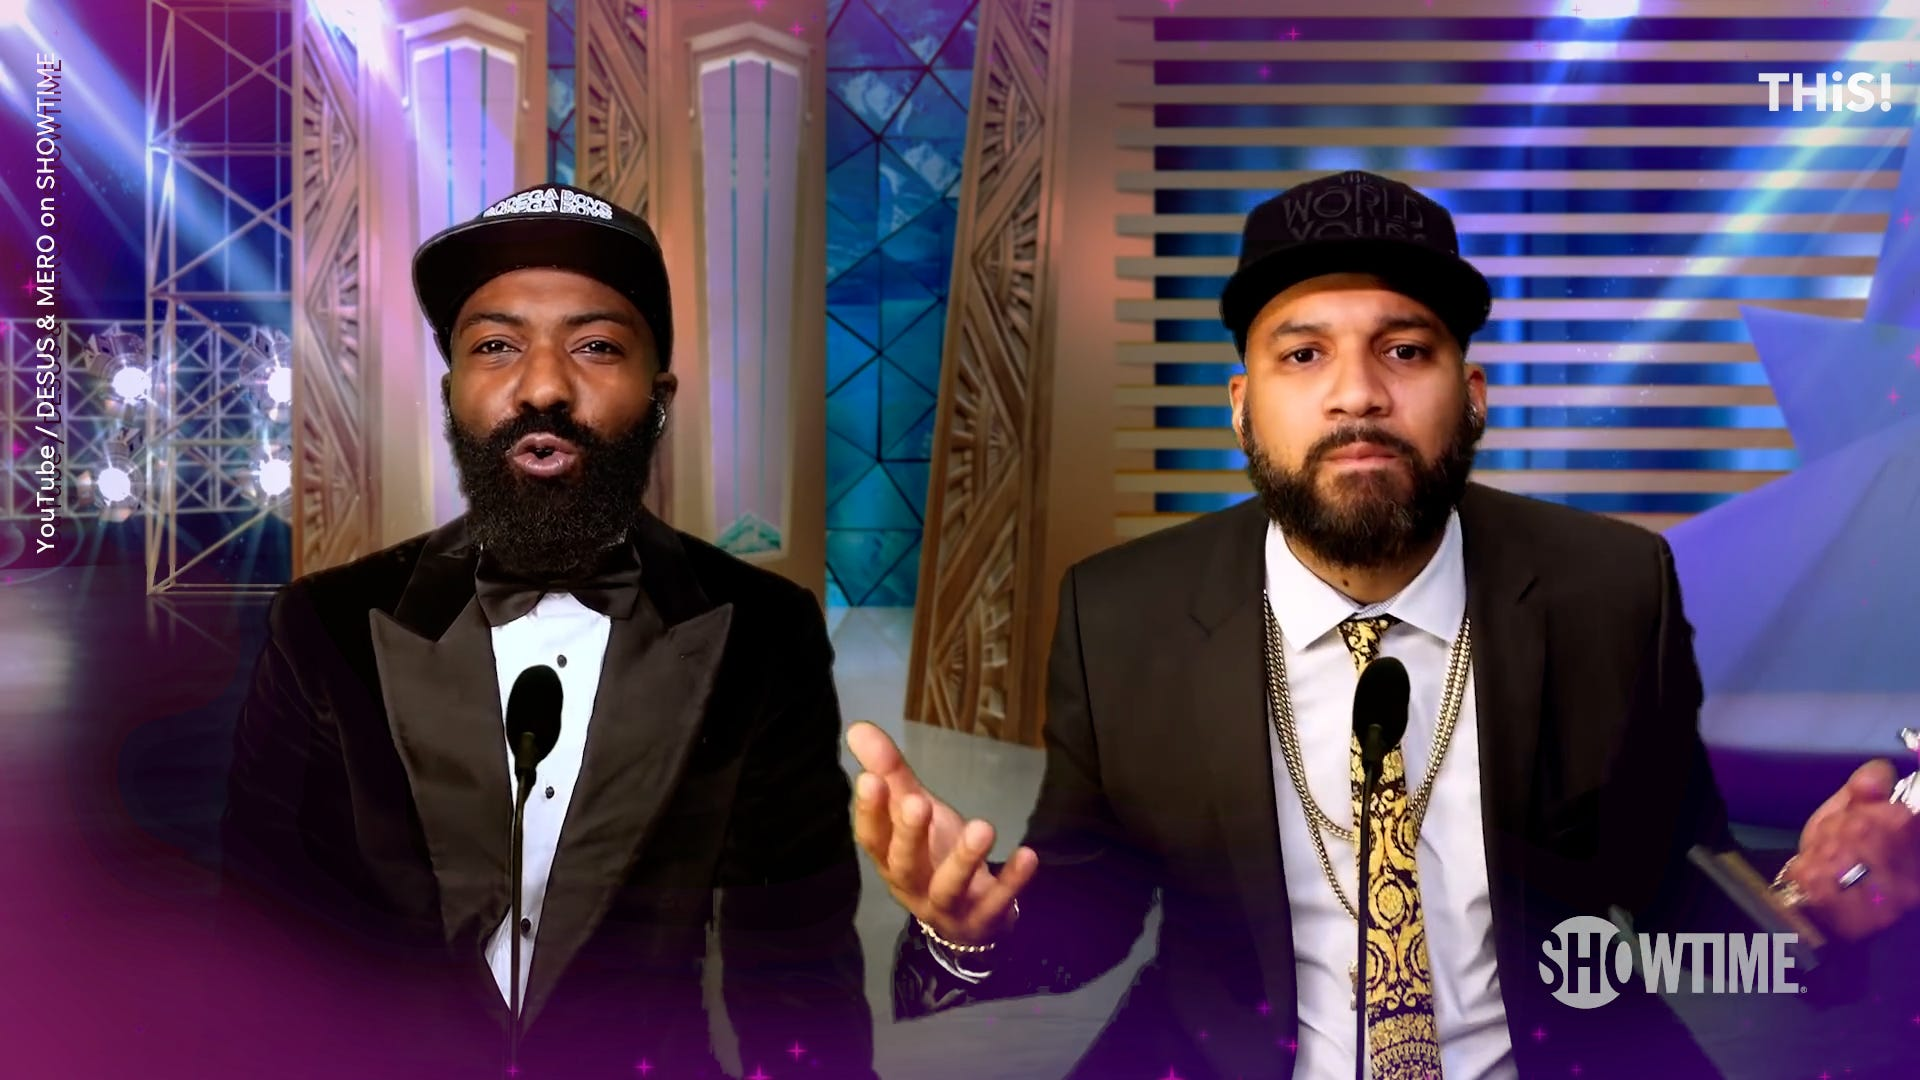 Comedians Desus and Mero talk cancel culture and life lessons in new book